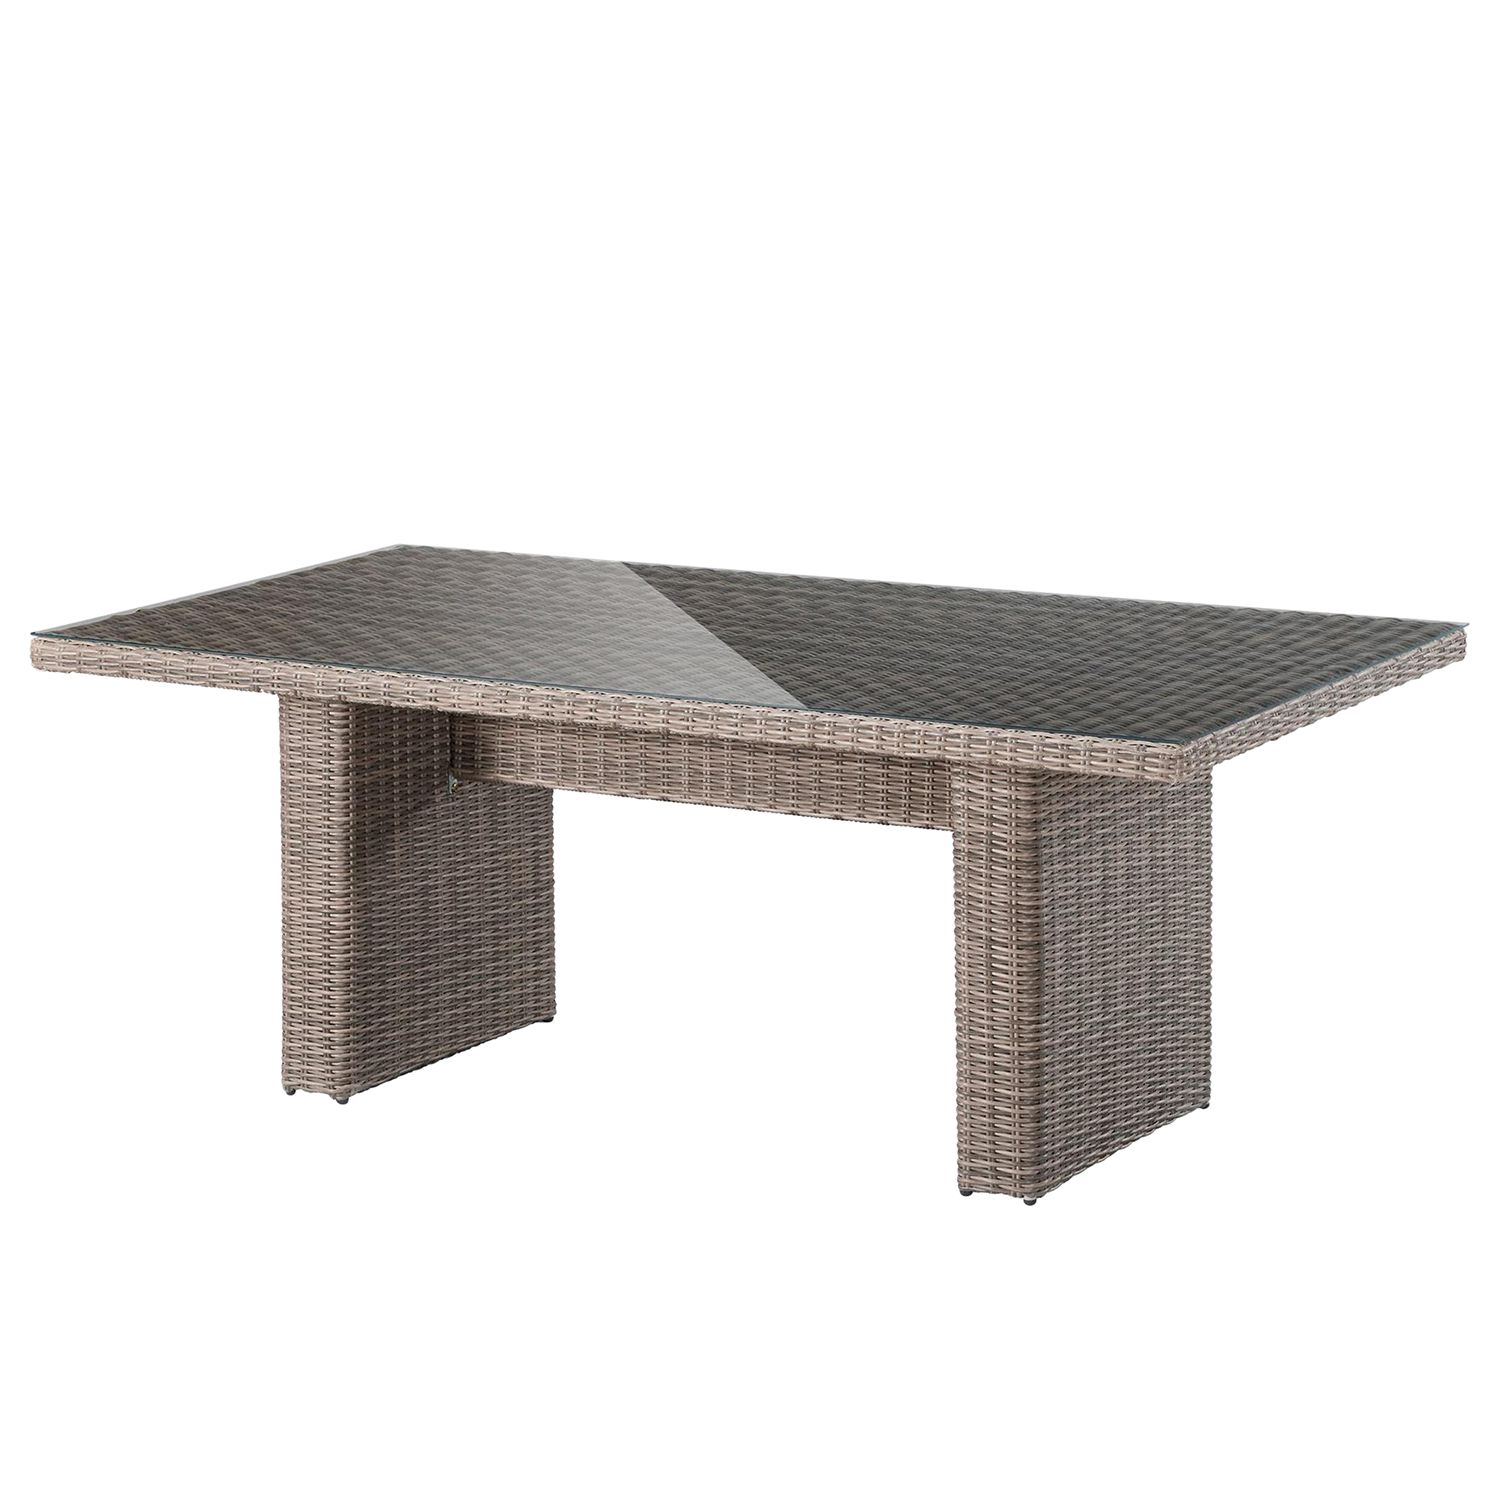 Table de jardin Villebon I